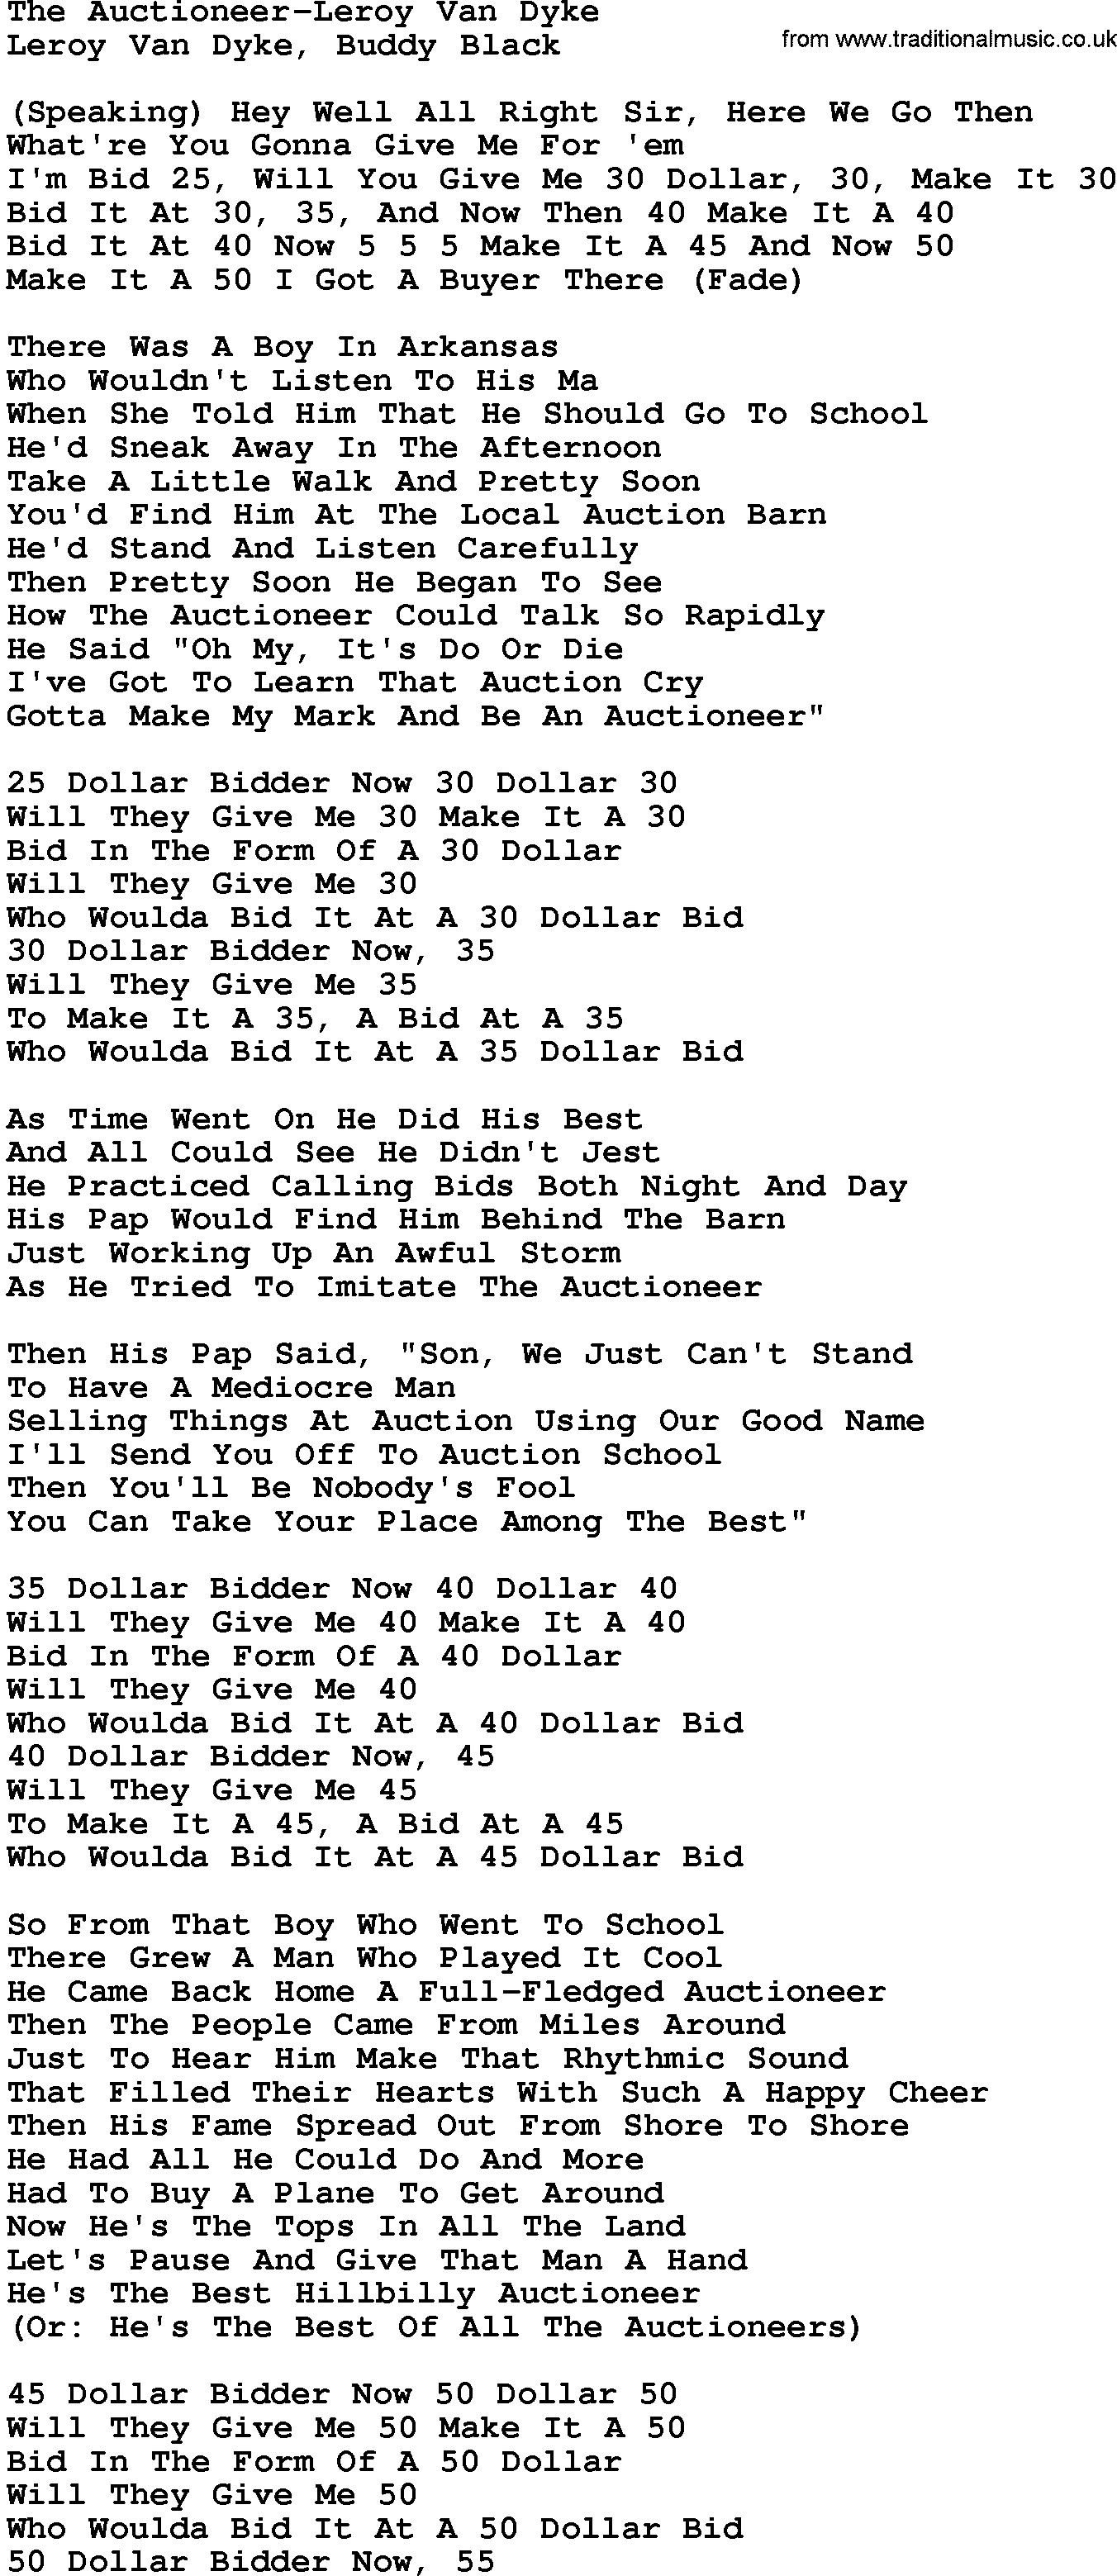 Country Music:The Auctioneer-Leroy Van Dyke Lyrics and Chords